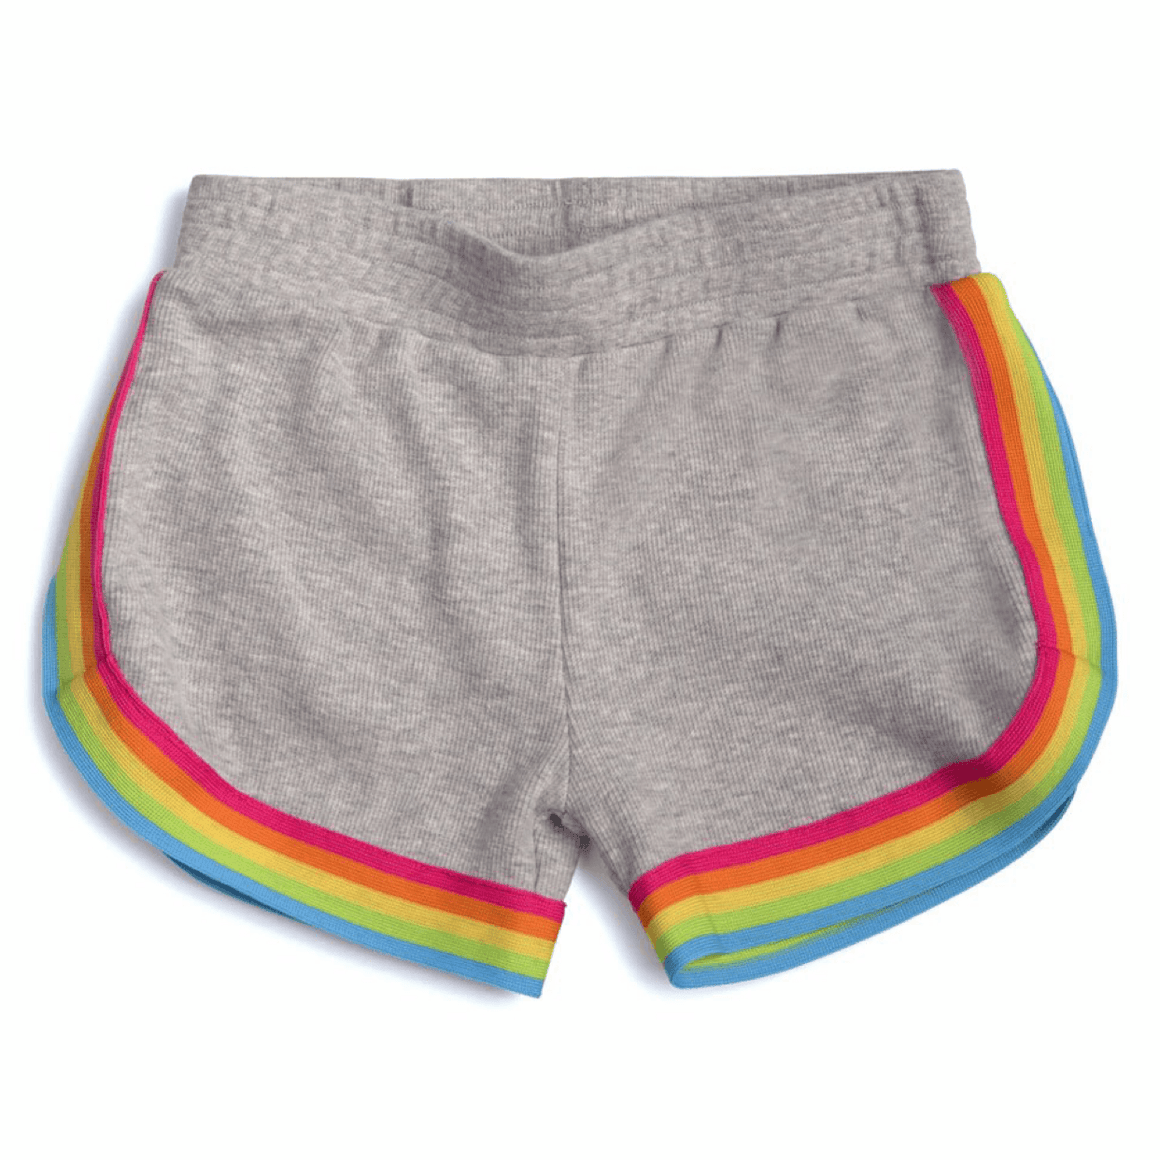 Appaman - Lori Shorts Shorts Appaman